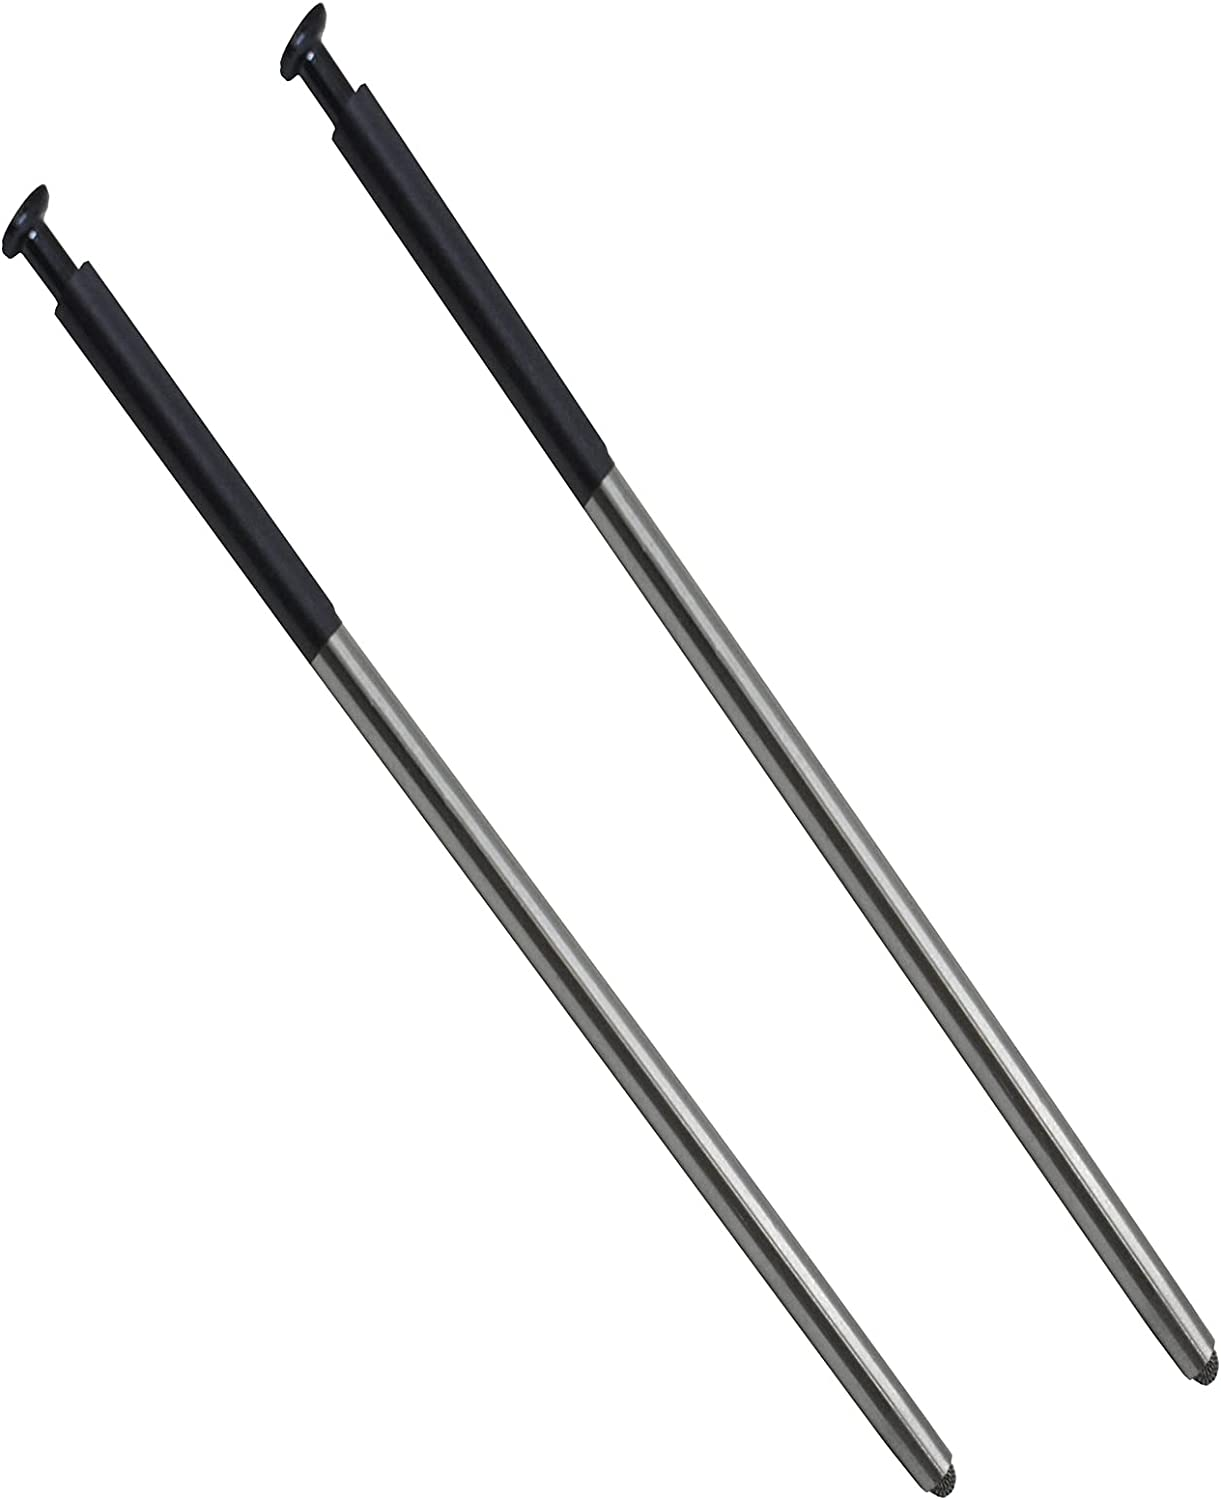 2 Pack Dallas Mall Light Black Touch Pen Mot for 2021 Replacement Stylus High order